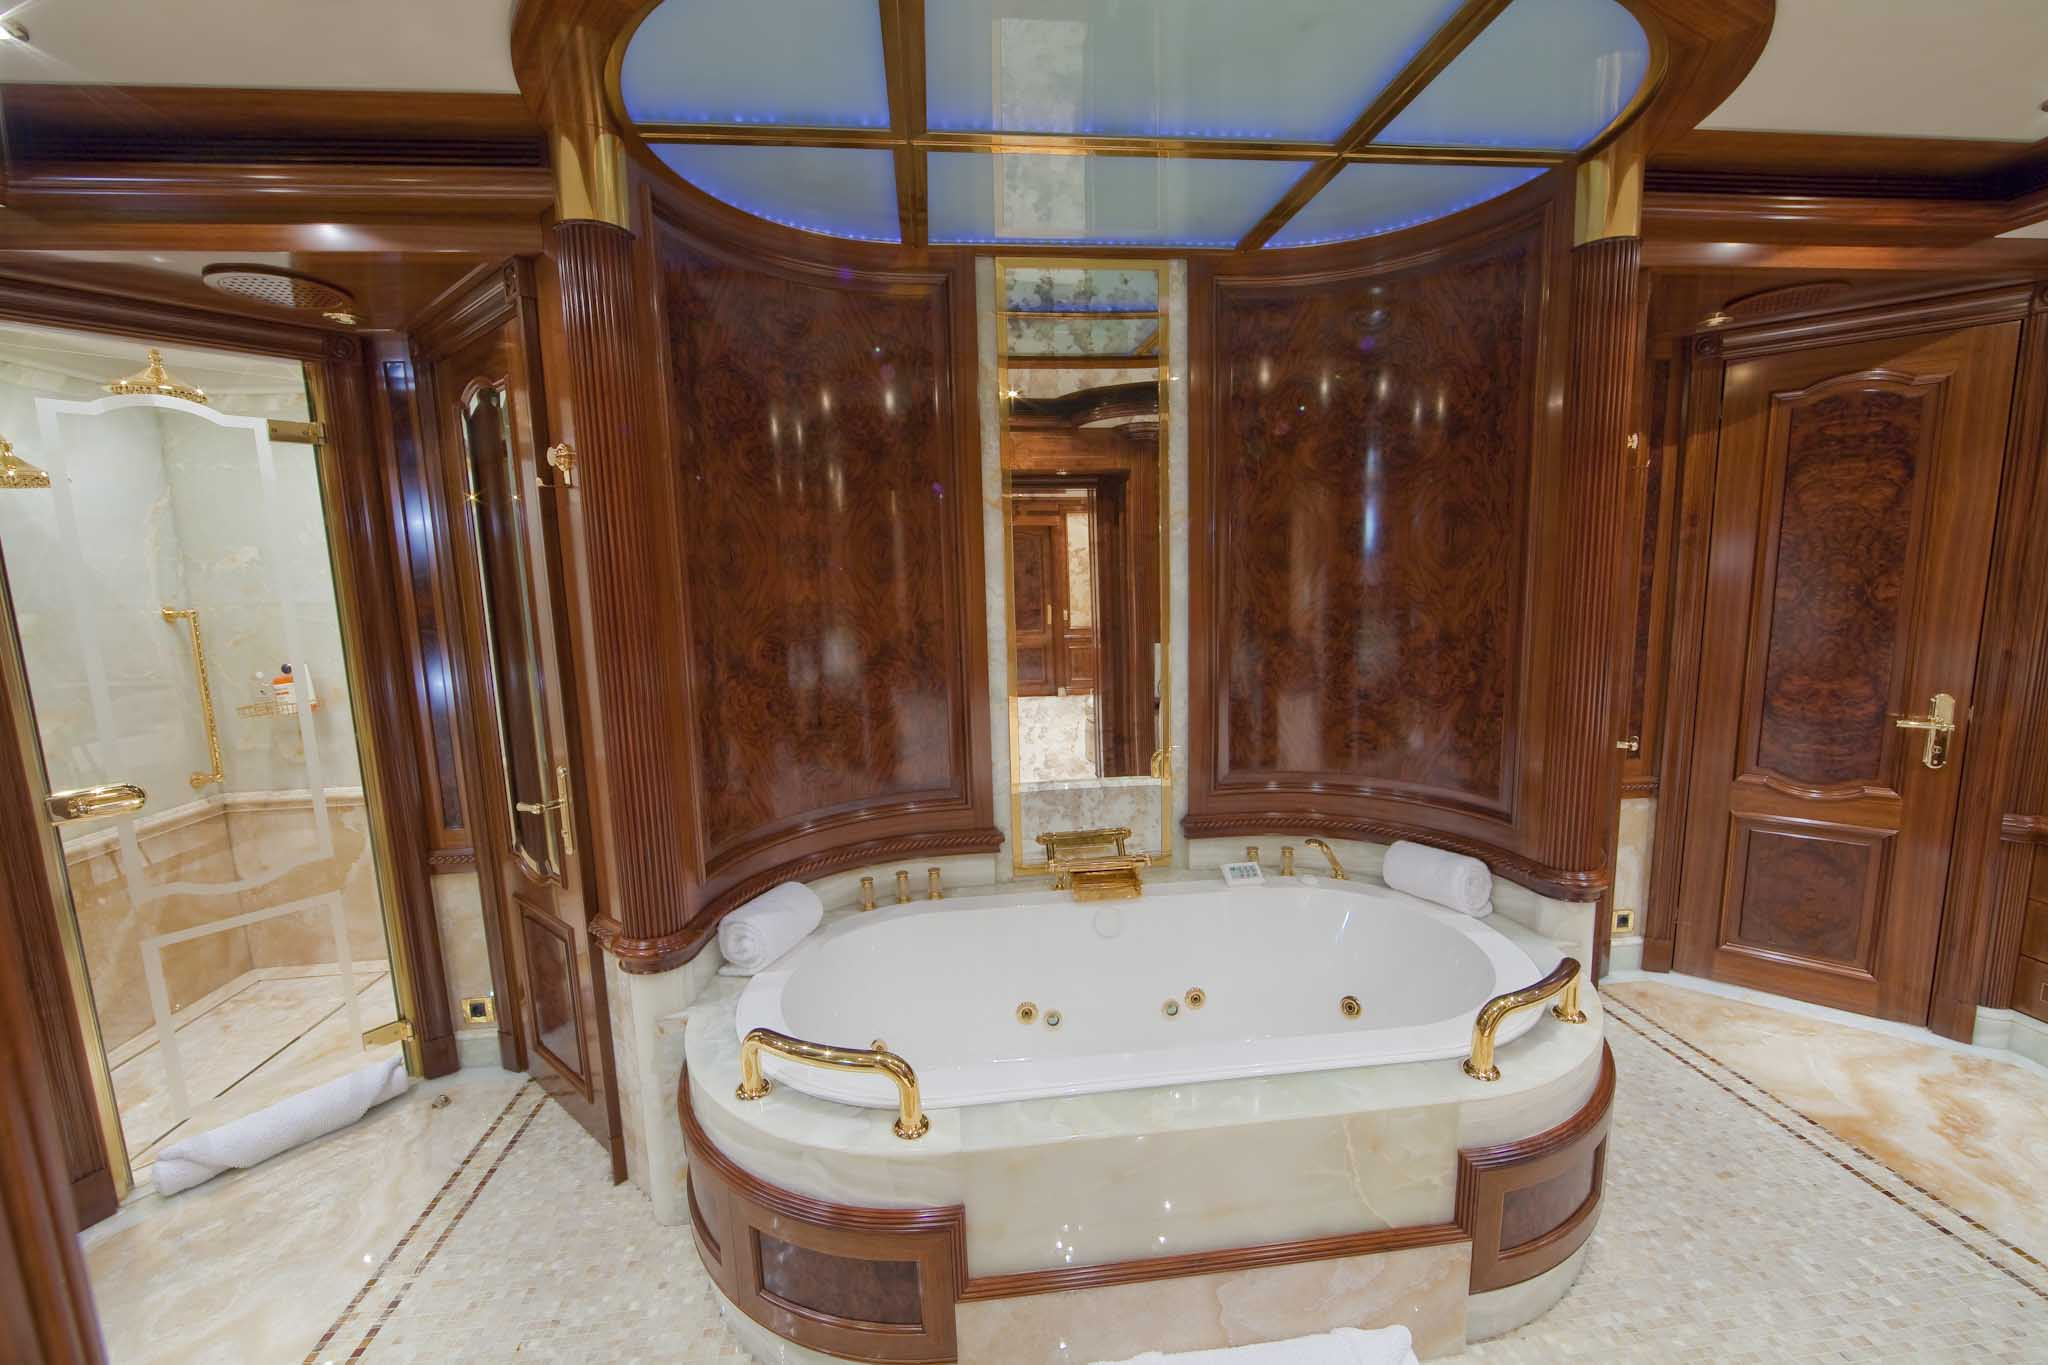 Luxury Bathrooms Photo Gallery luxury bathrooms for the rich - gallery | ebaum's world